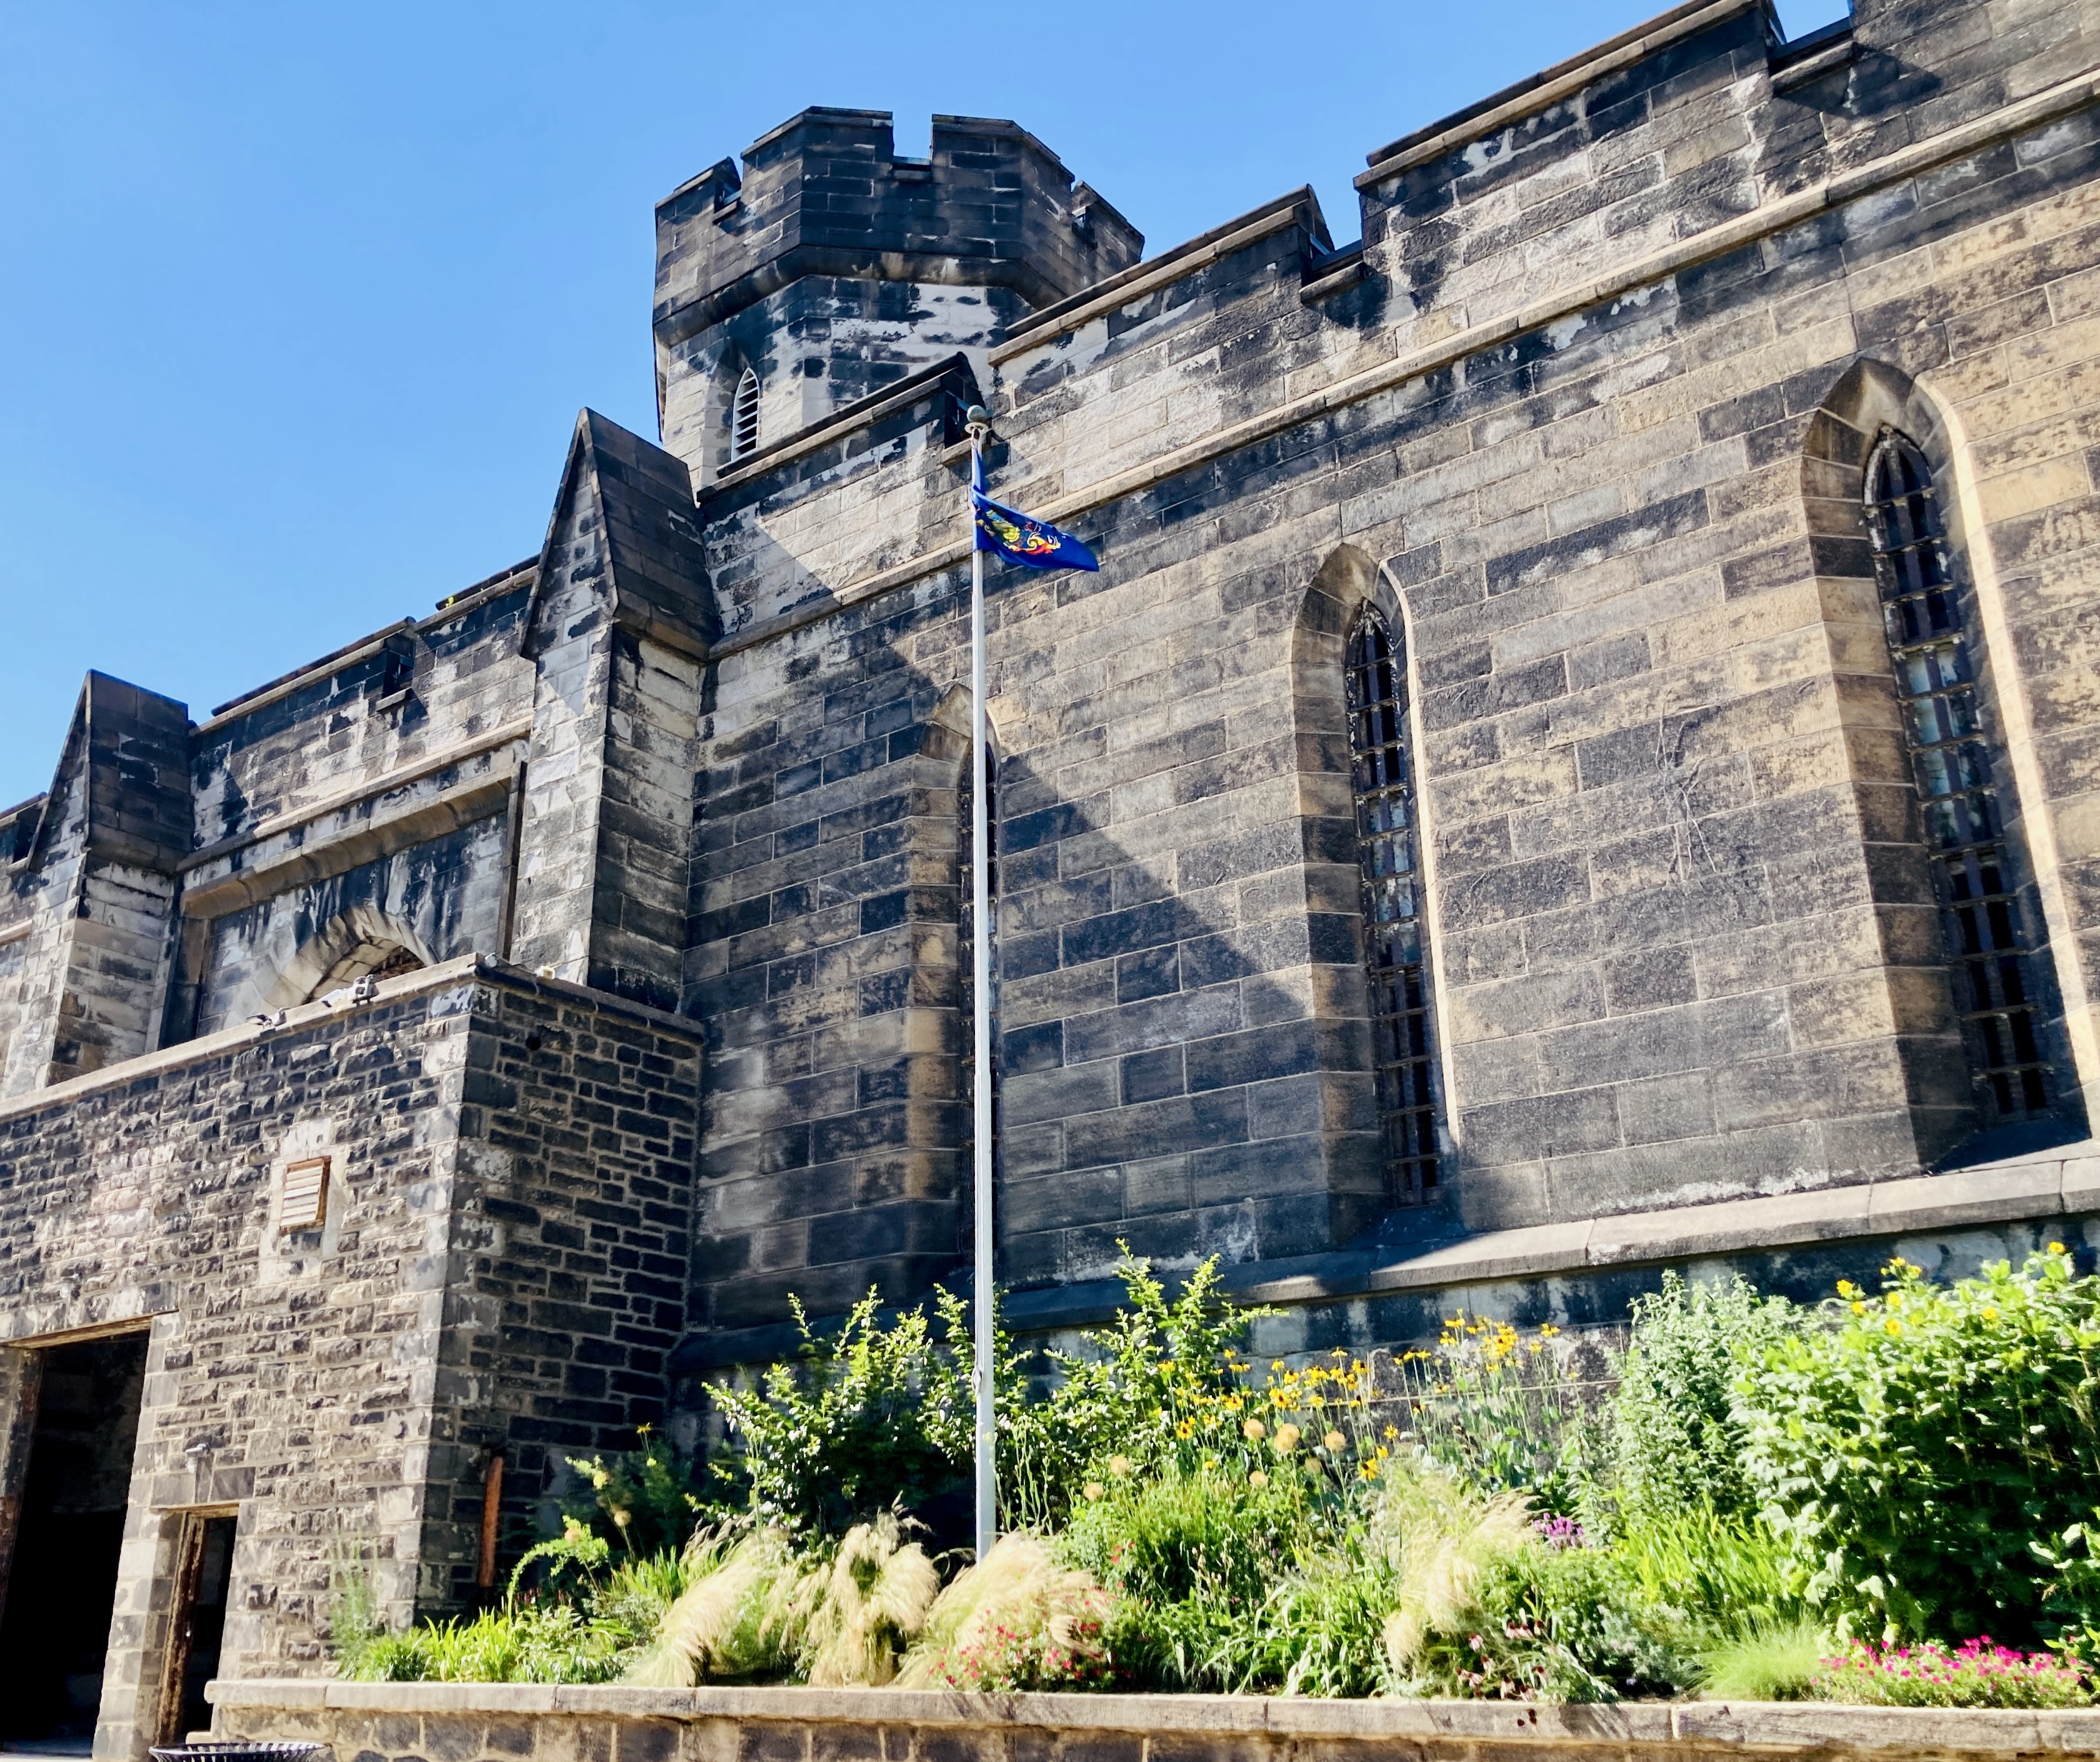 Eastern State Penitentiary in Fairmount, PA